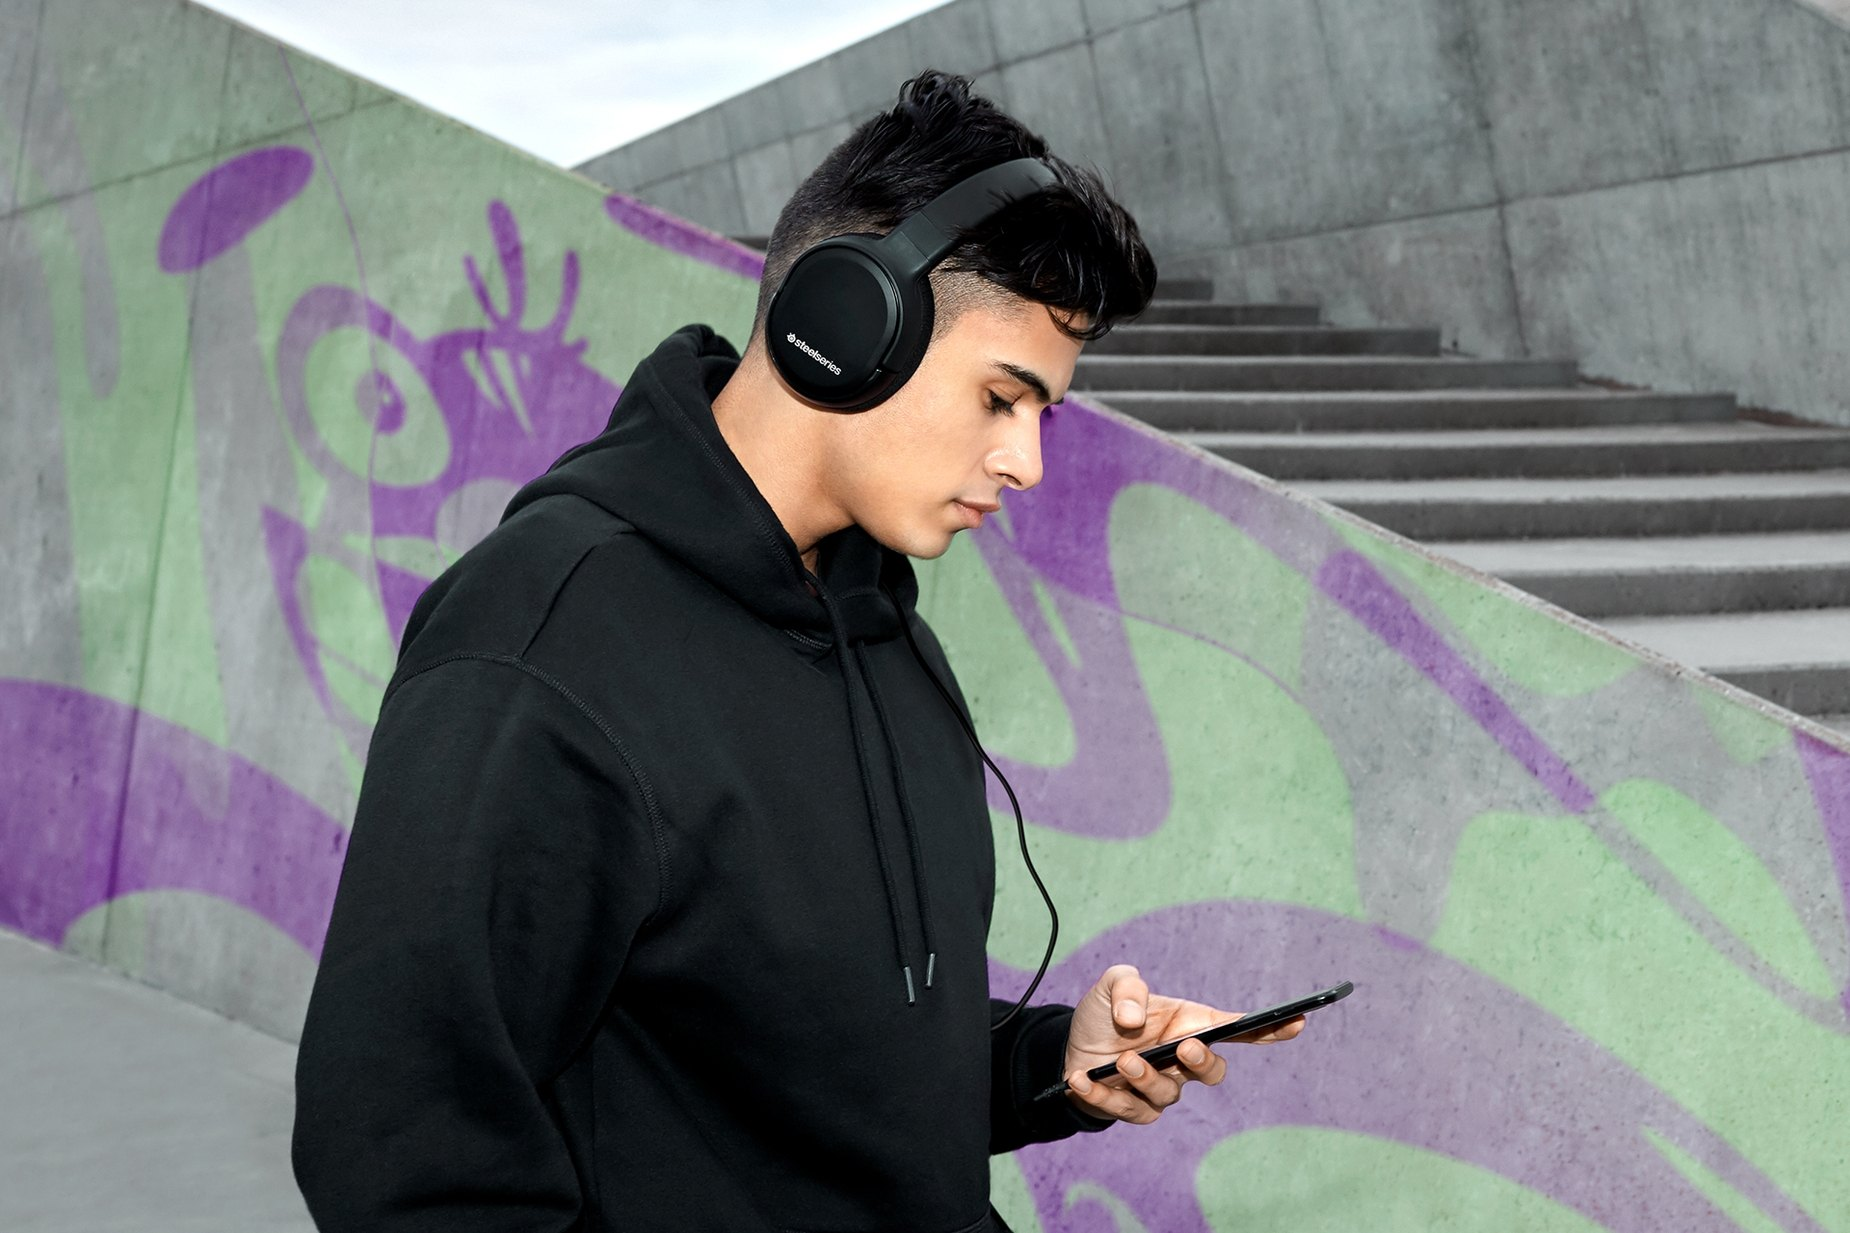 Gamer outdoors listening to music on a mobile device using the Arctis 1 gaming headset.